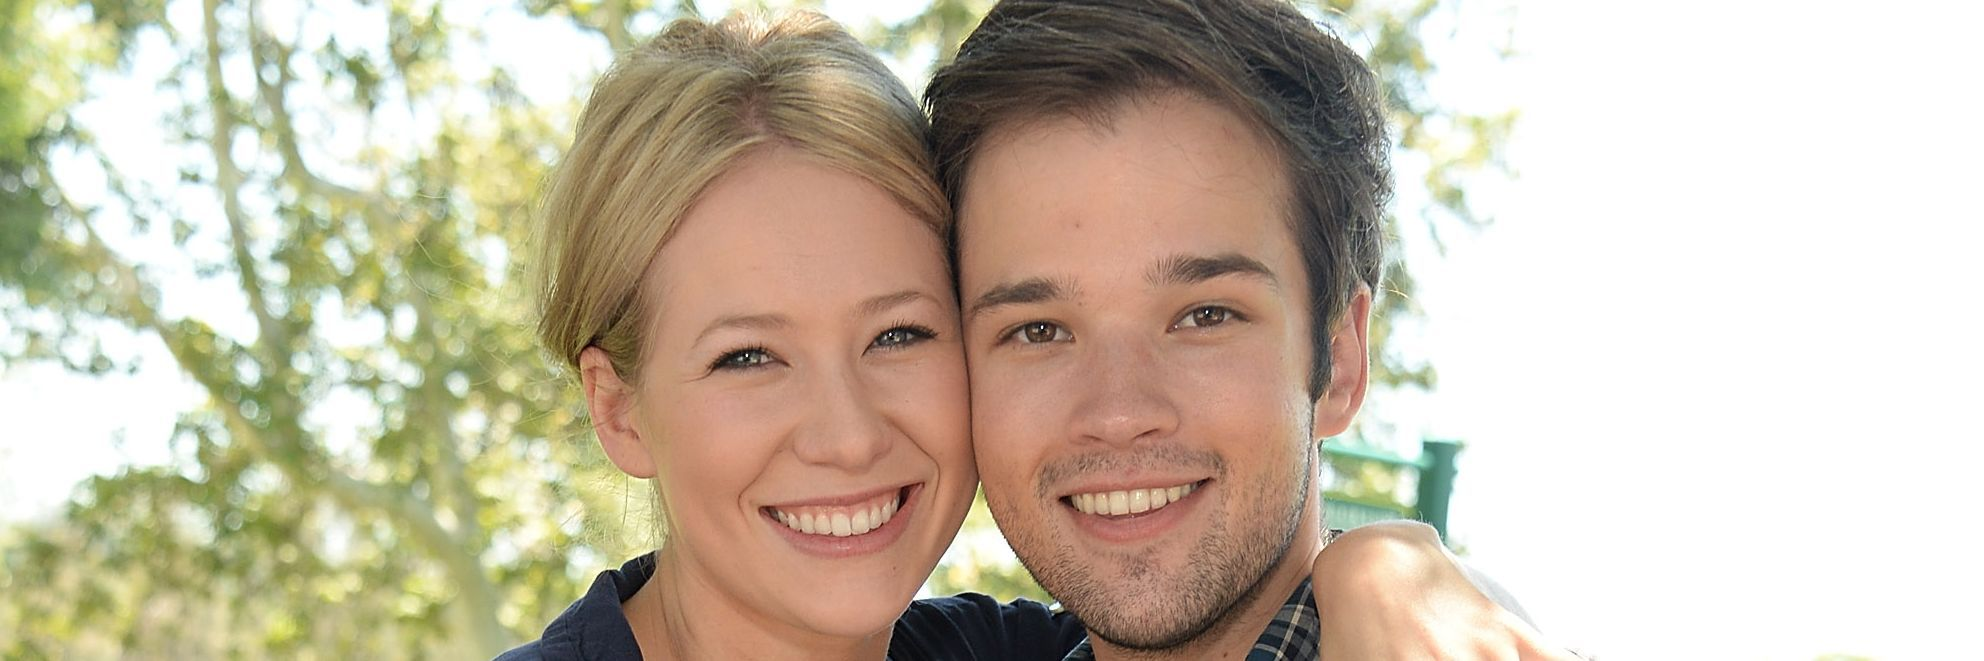 Nathan Kress Wedding.Watch Icarly Star Nathan Kress S Emotional Wedding Montage